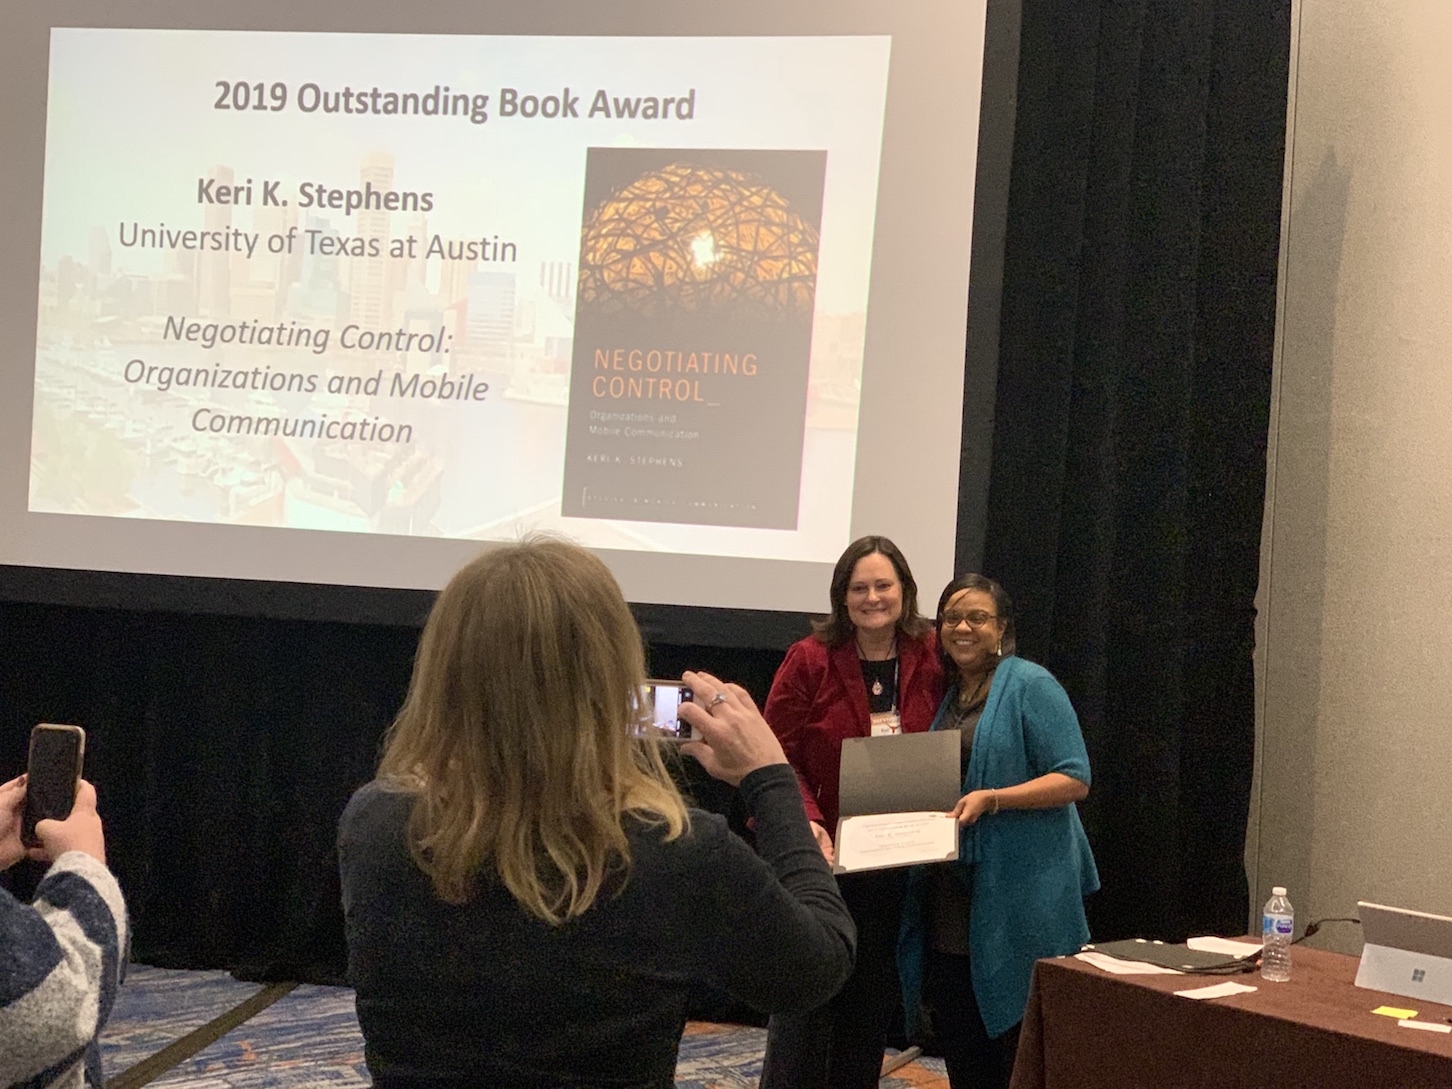 Dr. Keri Stephens being awarded 2019 Outstanding Book Award from the National Communication Association